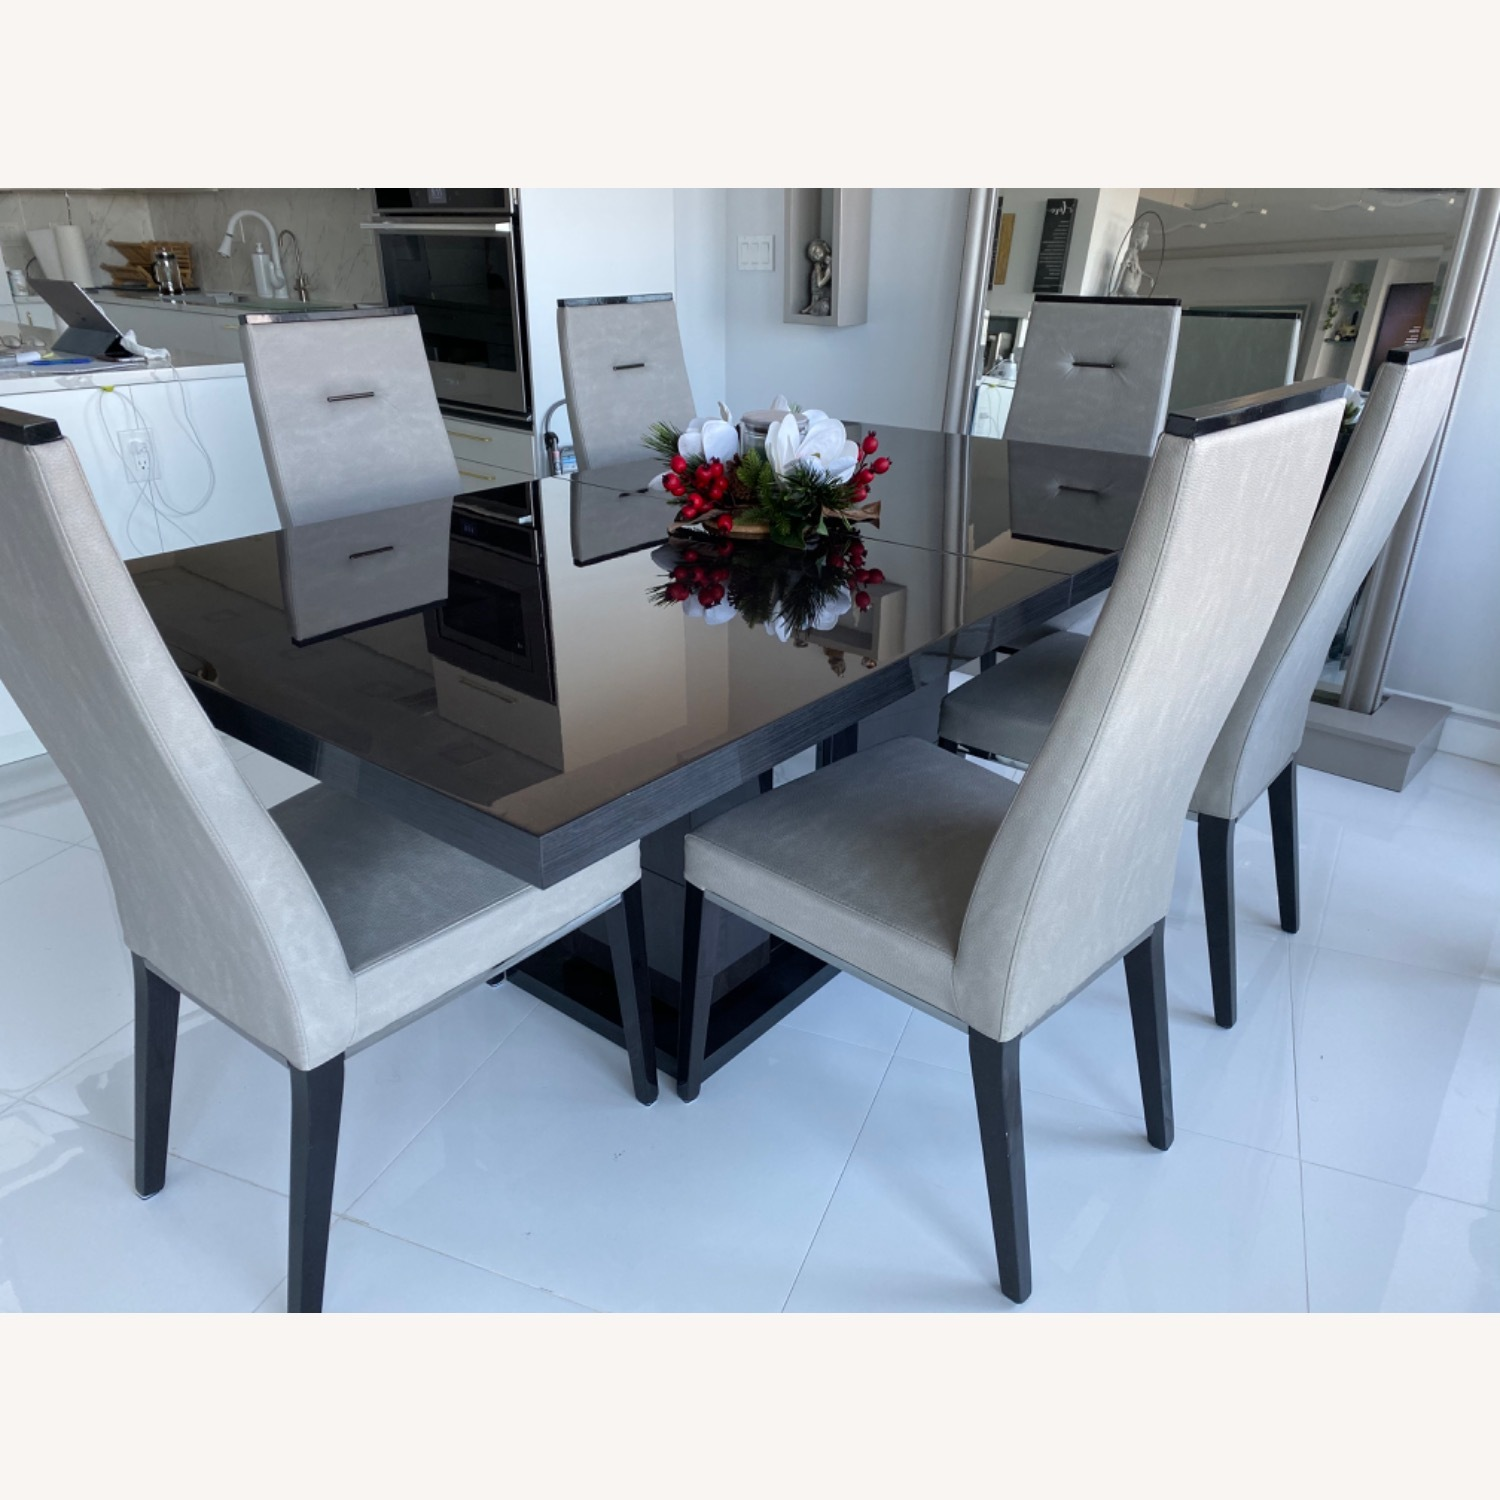 Dining Room Set - 6 leather chairs - image-4